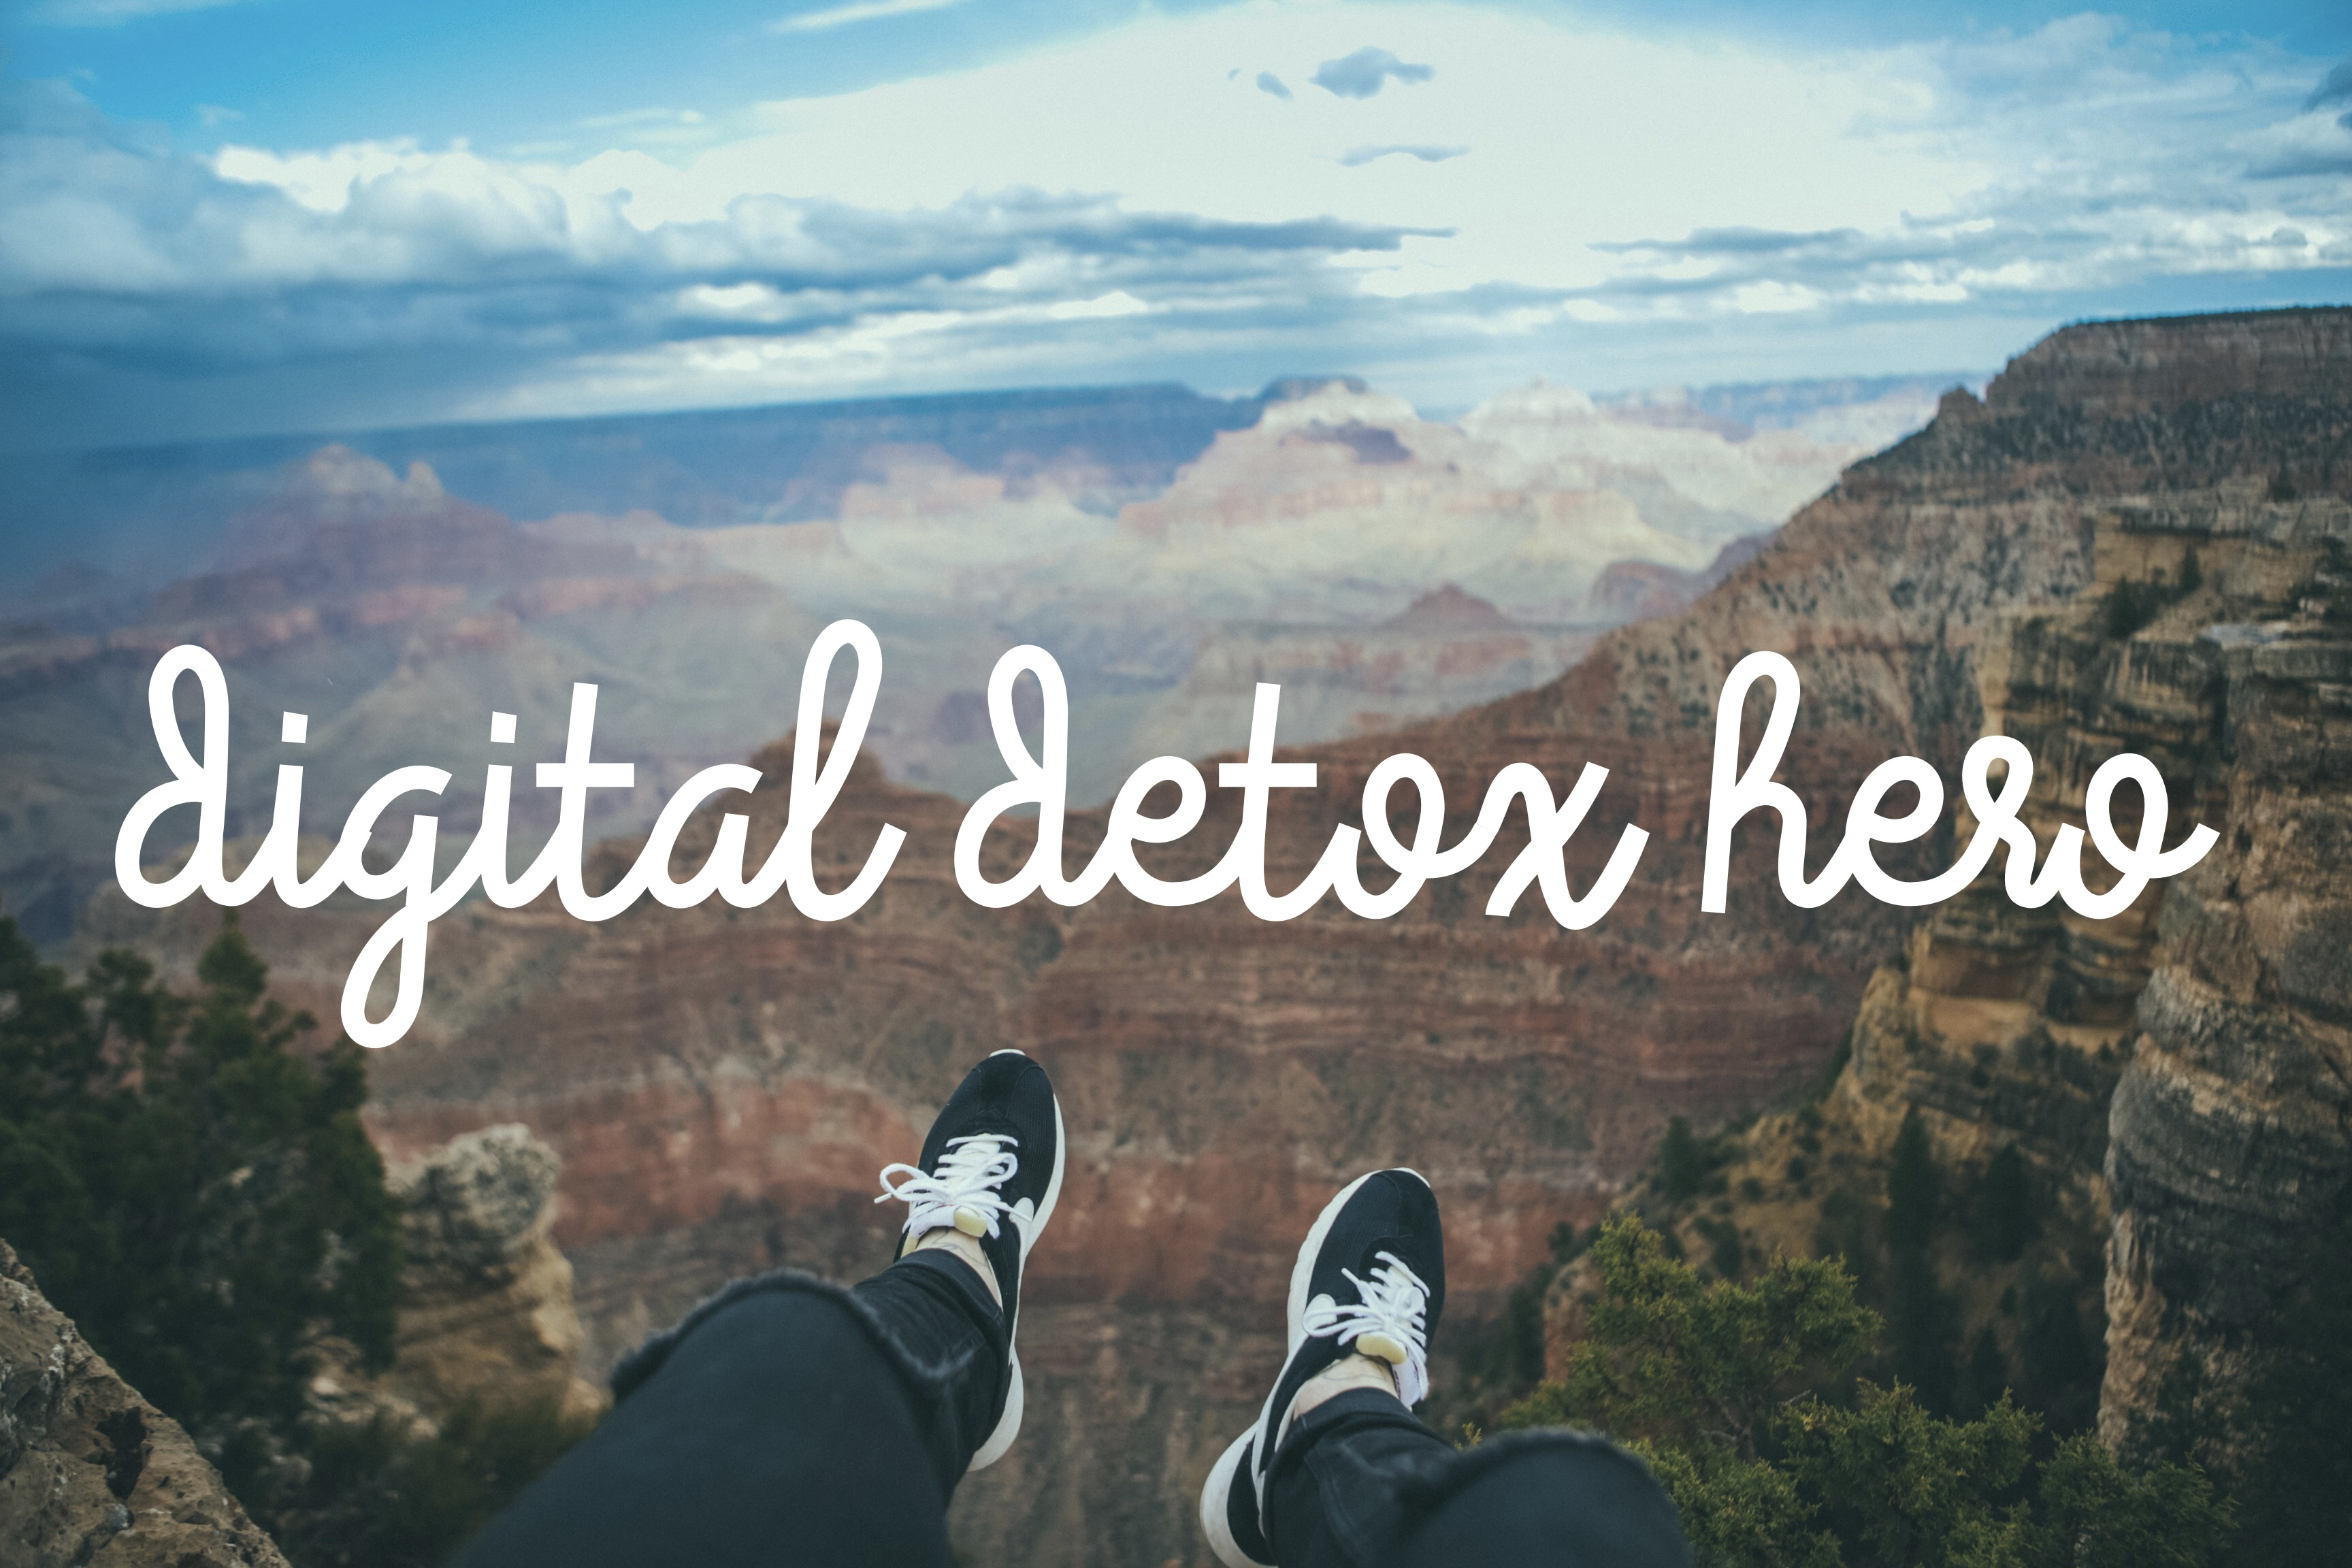 Digital Detox Heroes - Time To Log Off Instagram Takeover